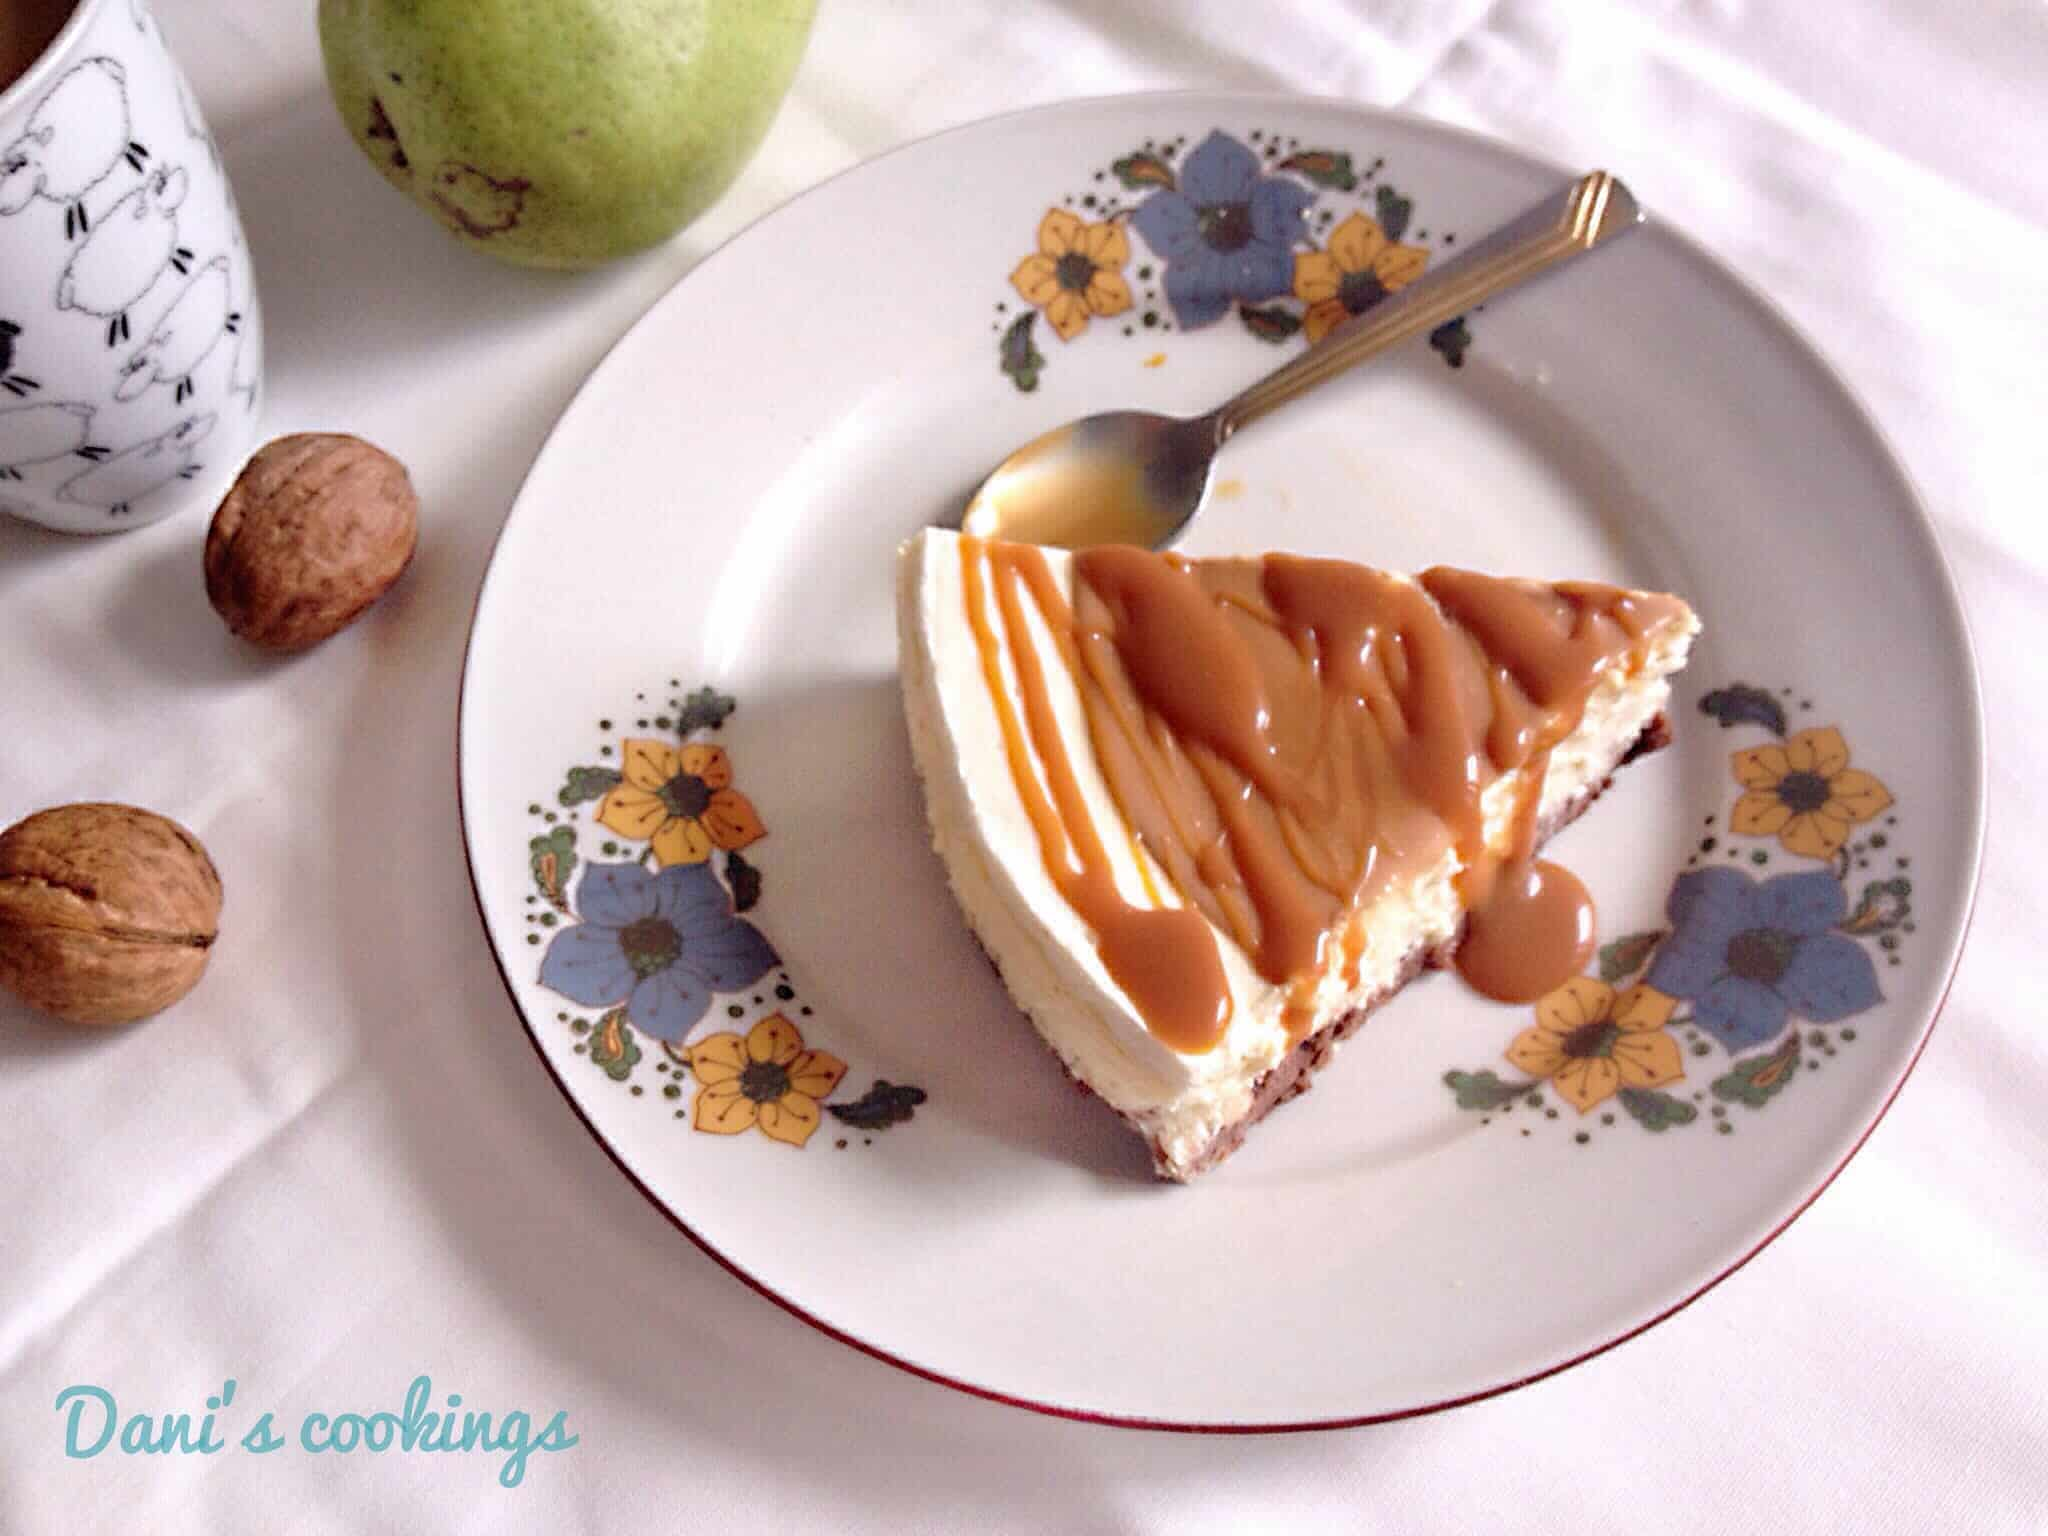 a slice of cheesecake with caramel on a plate with flowers